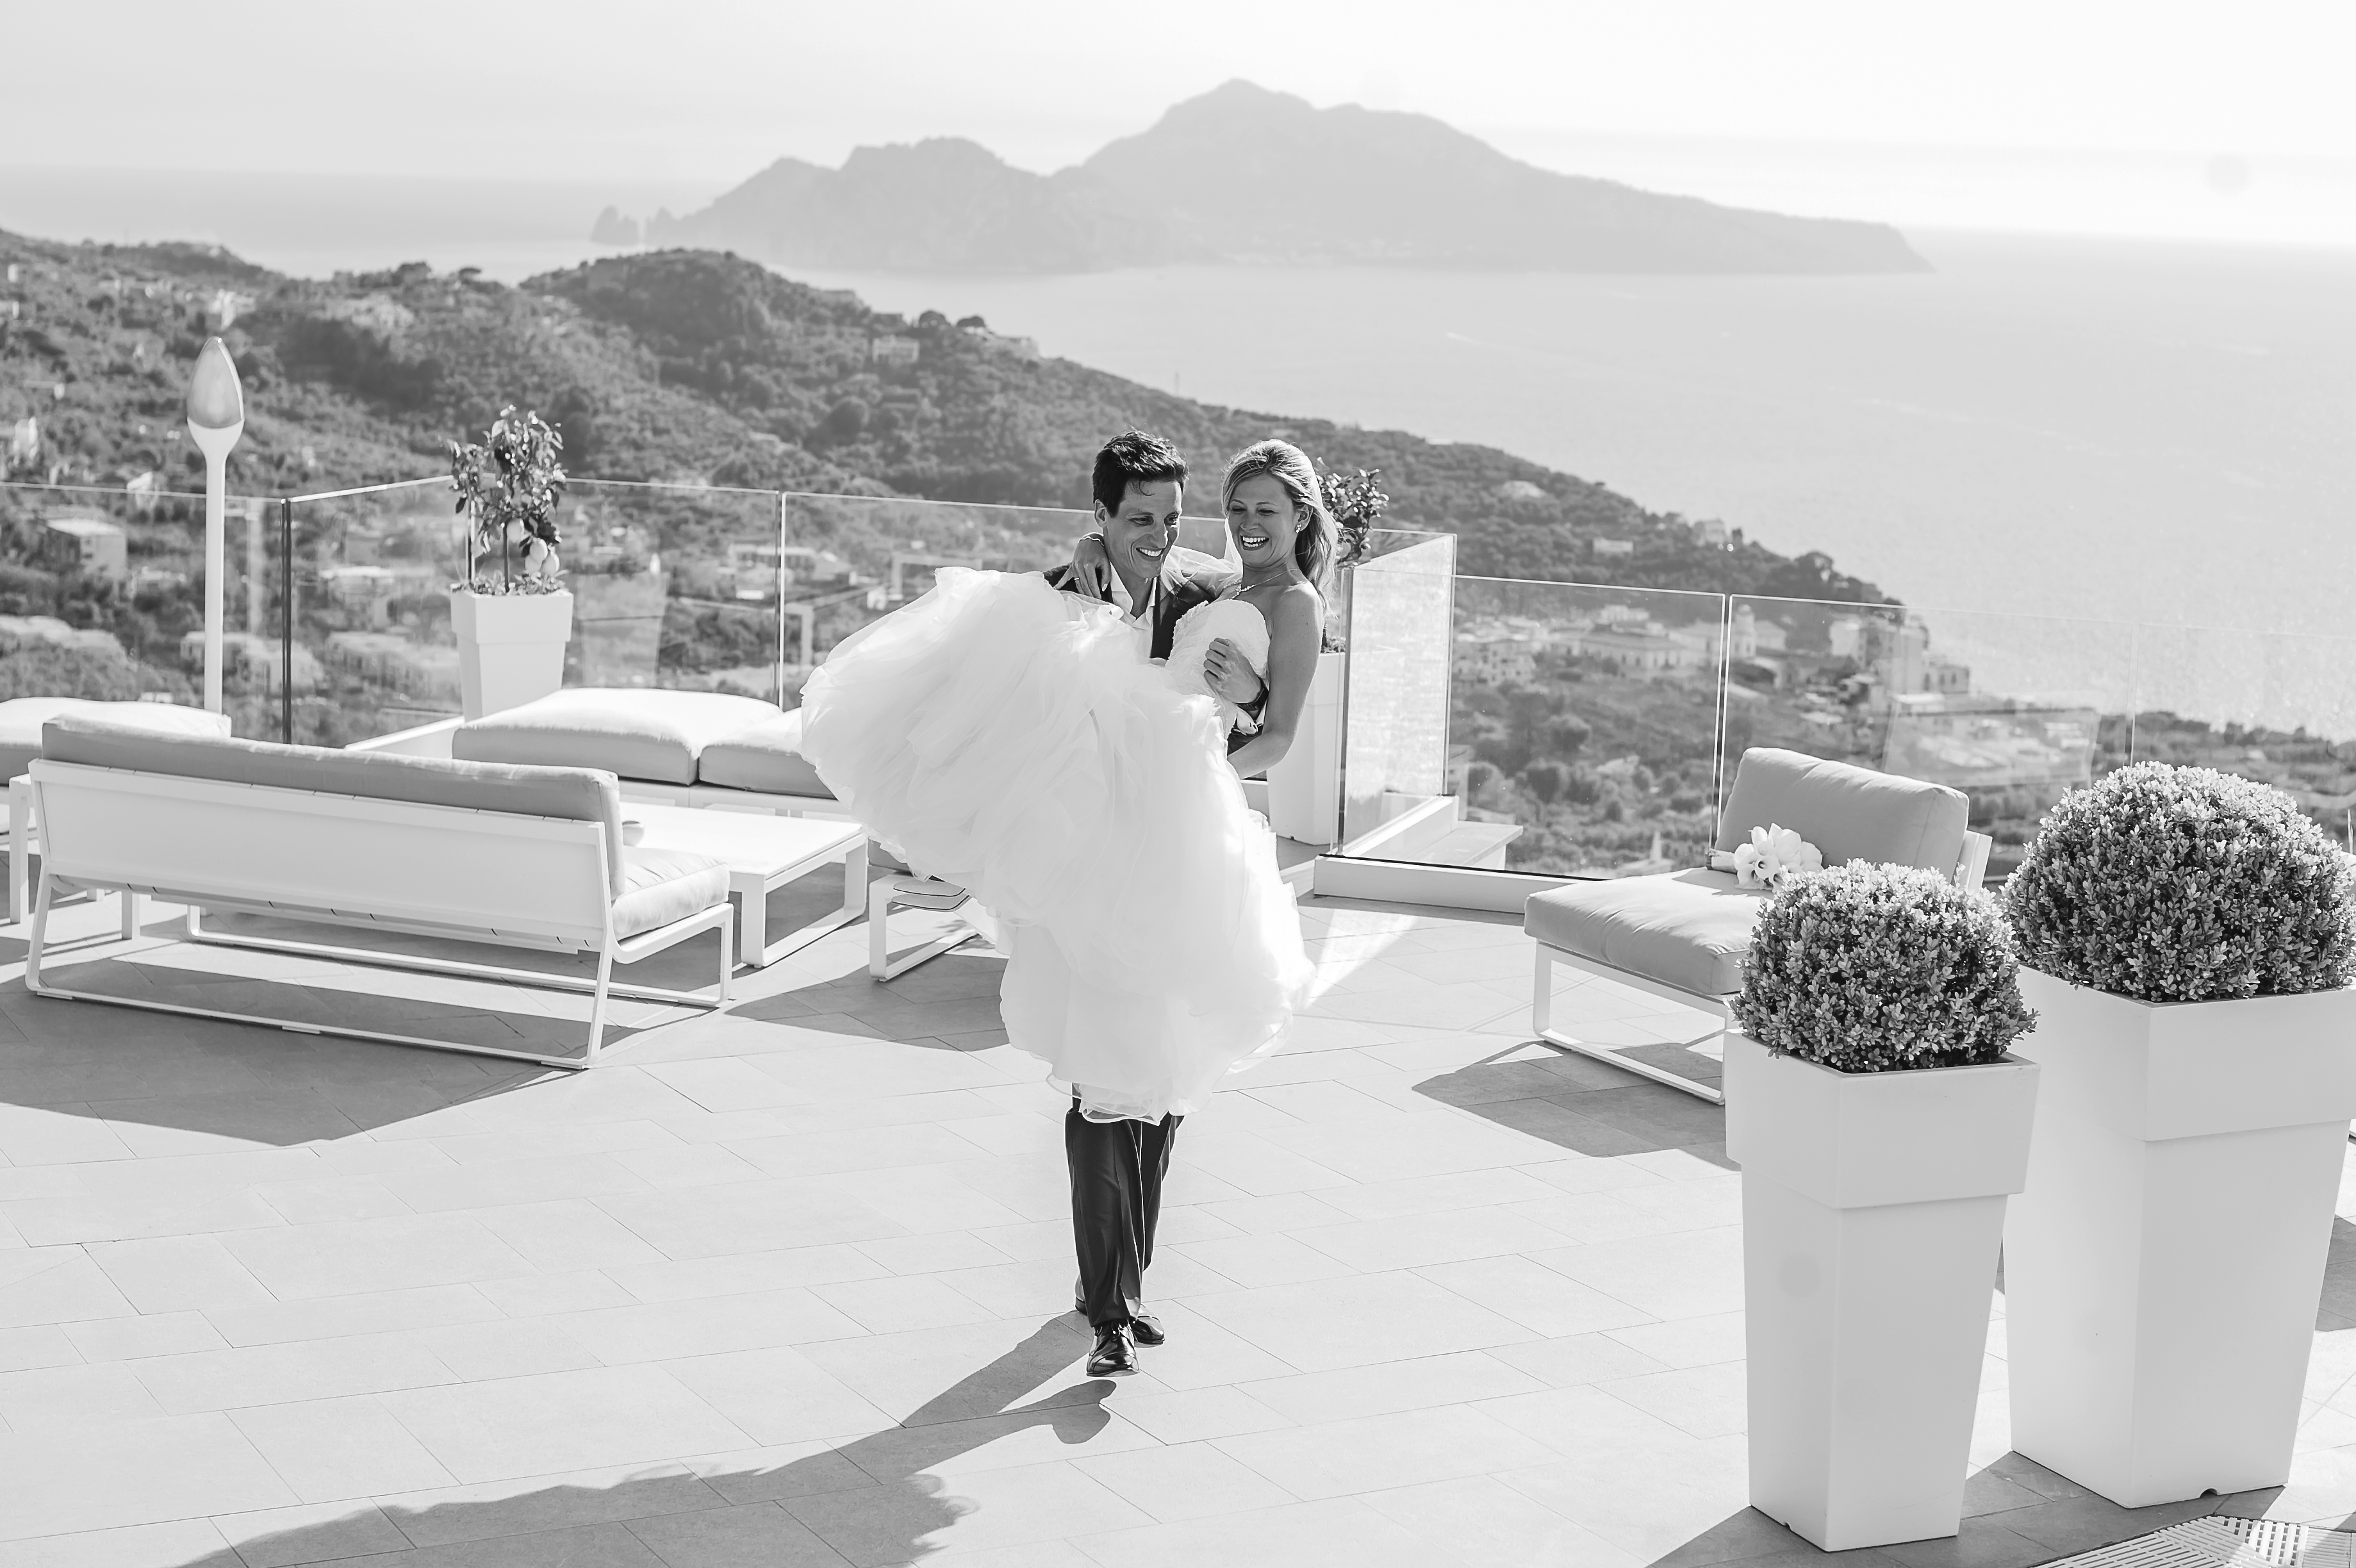 Destination wedding in Sorrento overlooking the sea